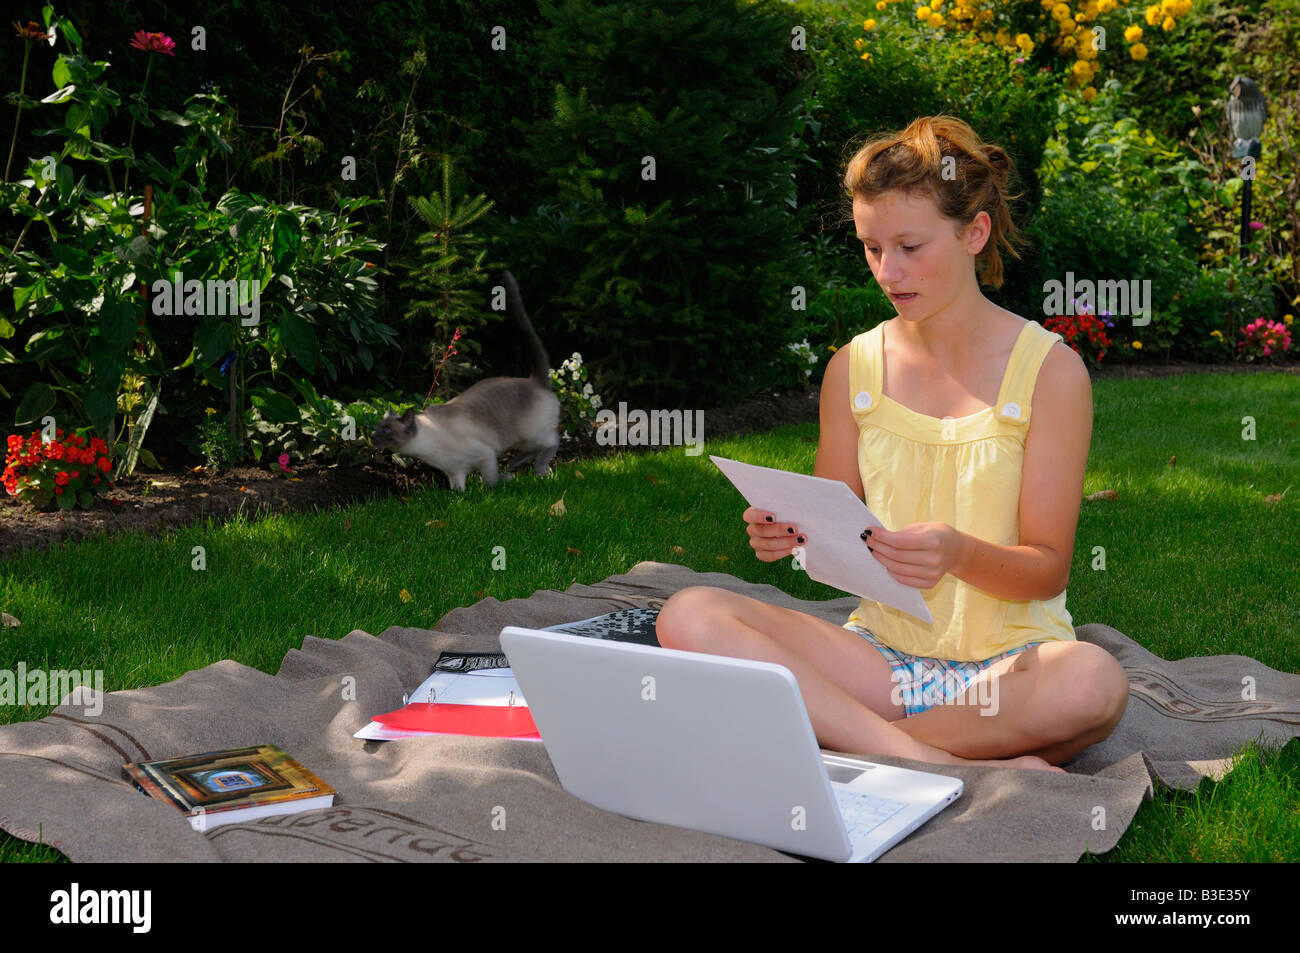 Teenager doing homework with laptop on a blanket in the back yard lawn grass in shade of a tree with running cat - Stock Image